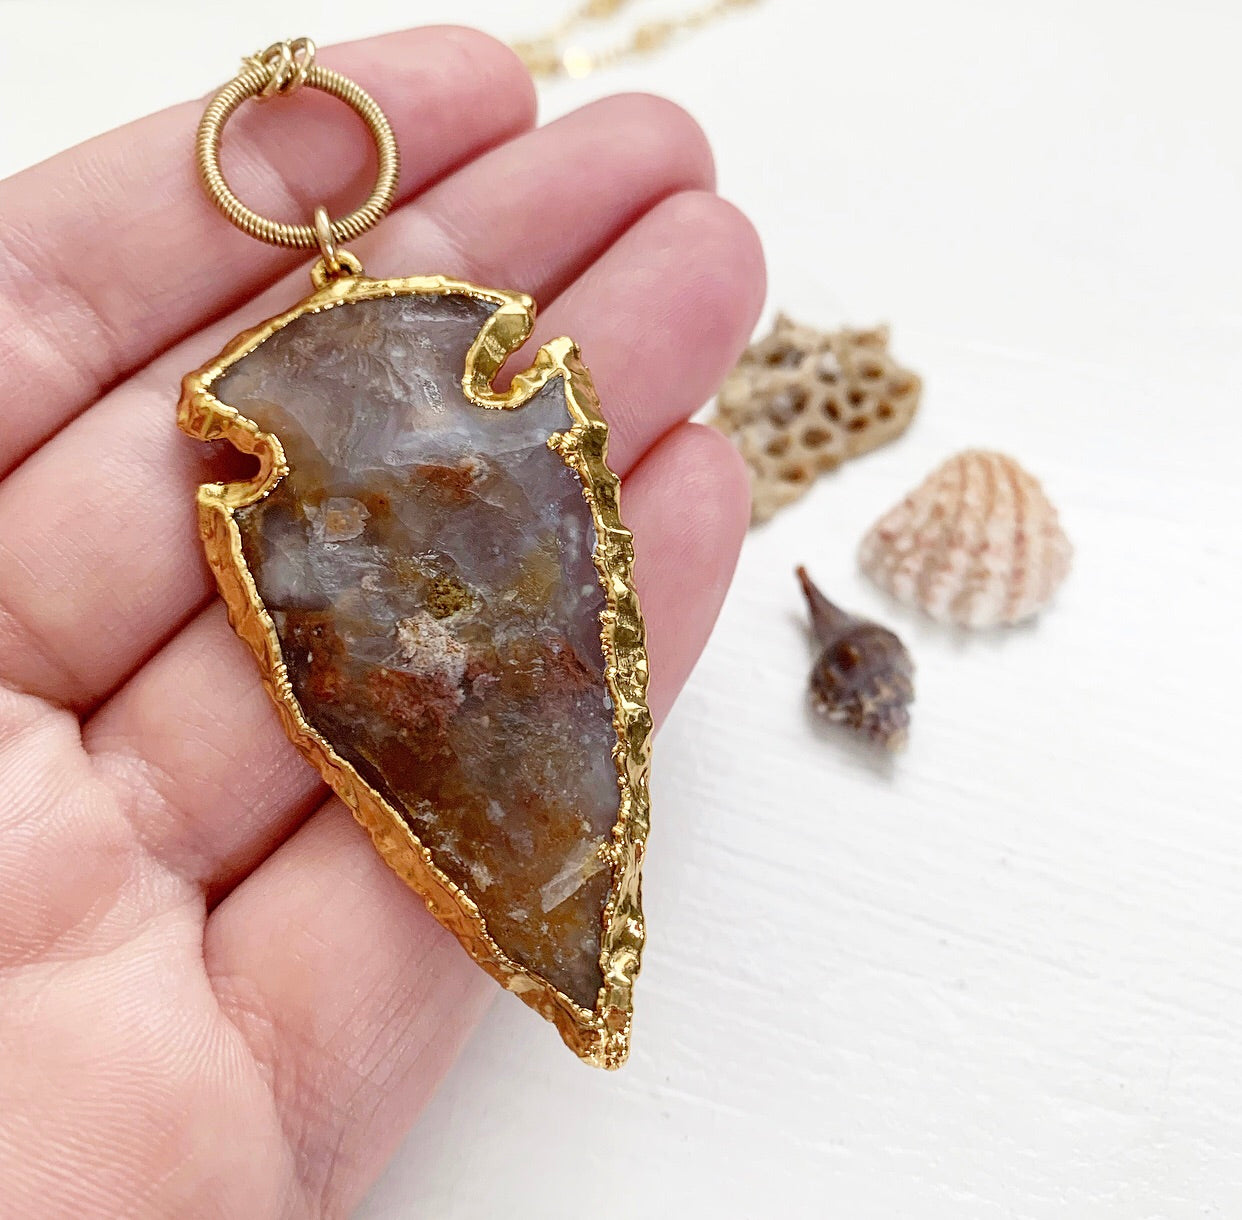 821-Arrowhead Necklace